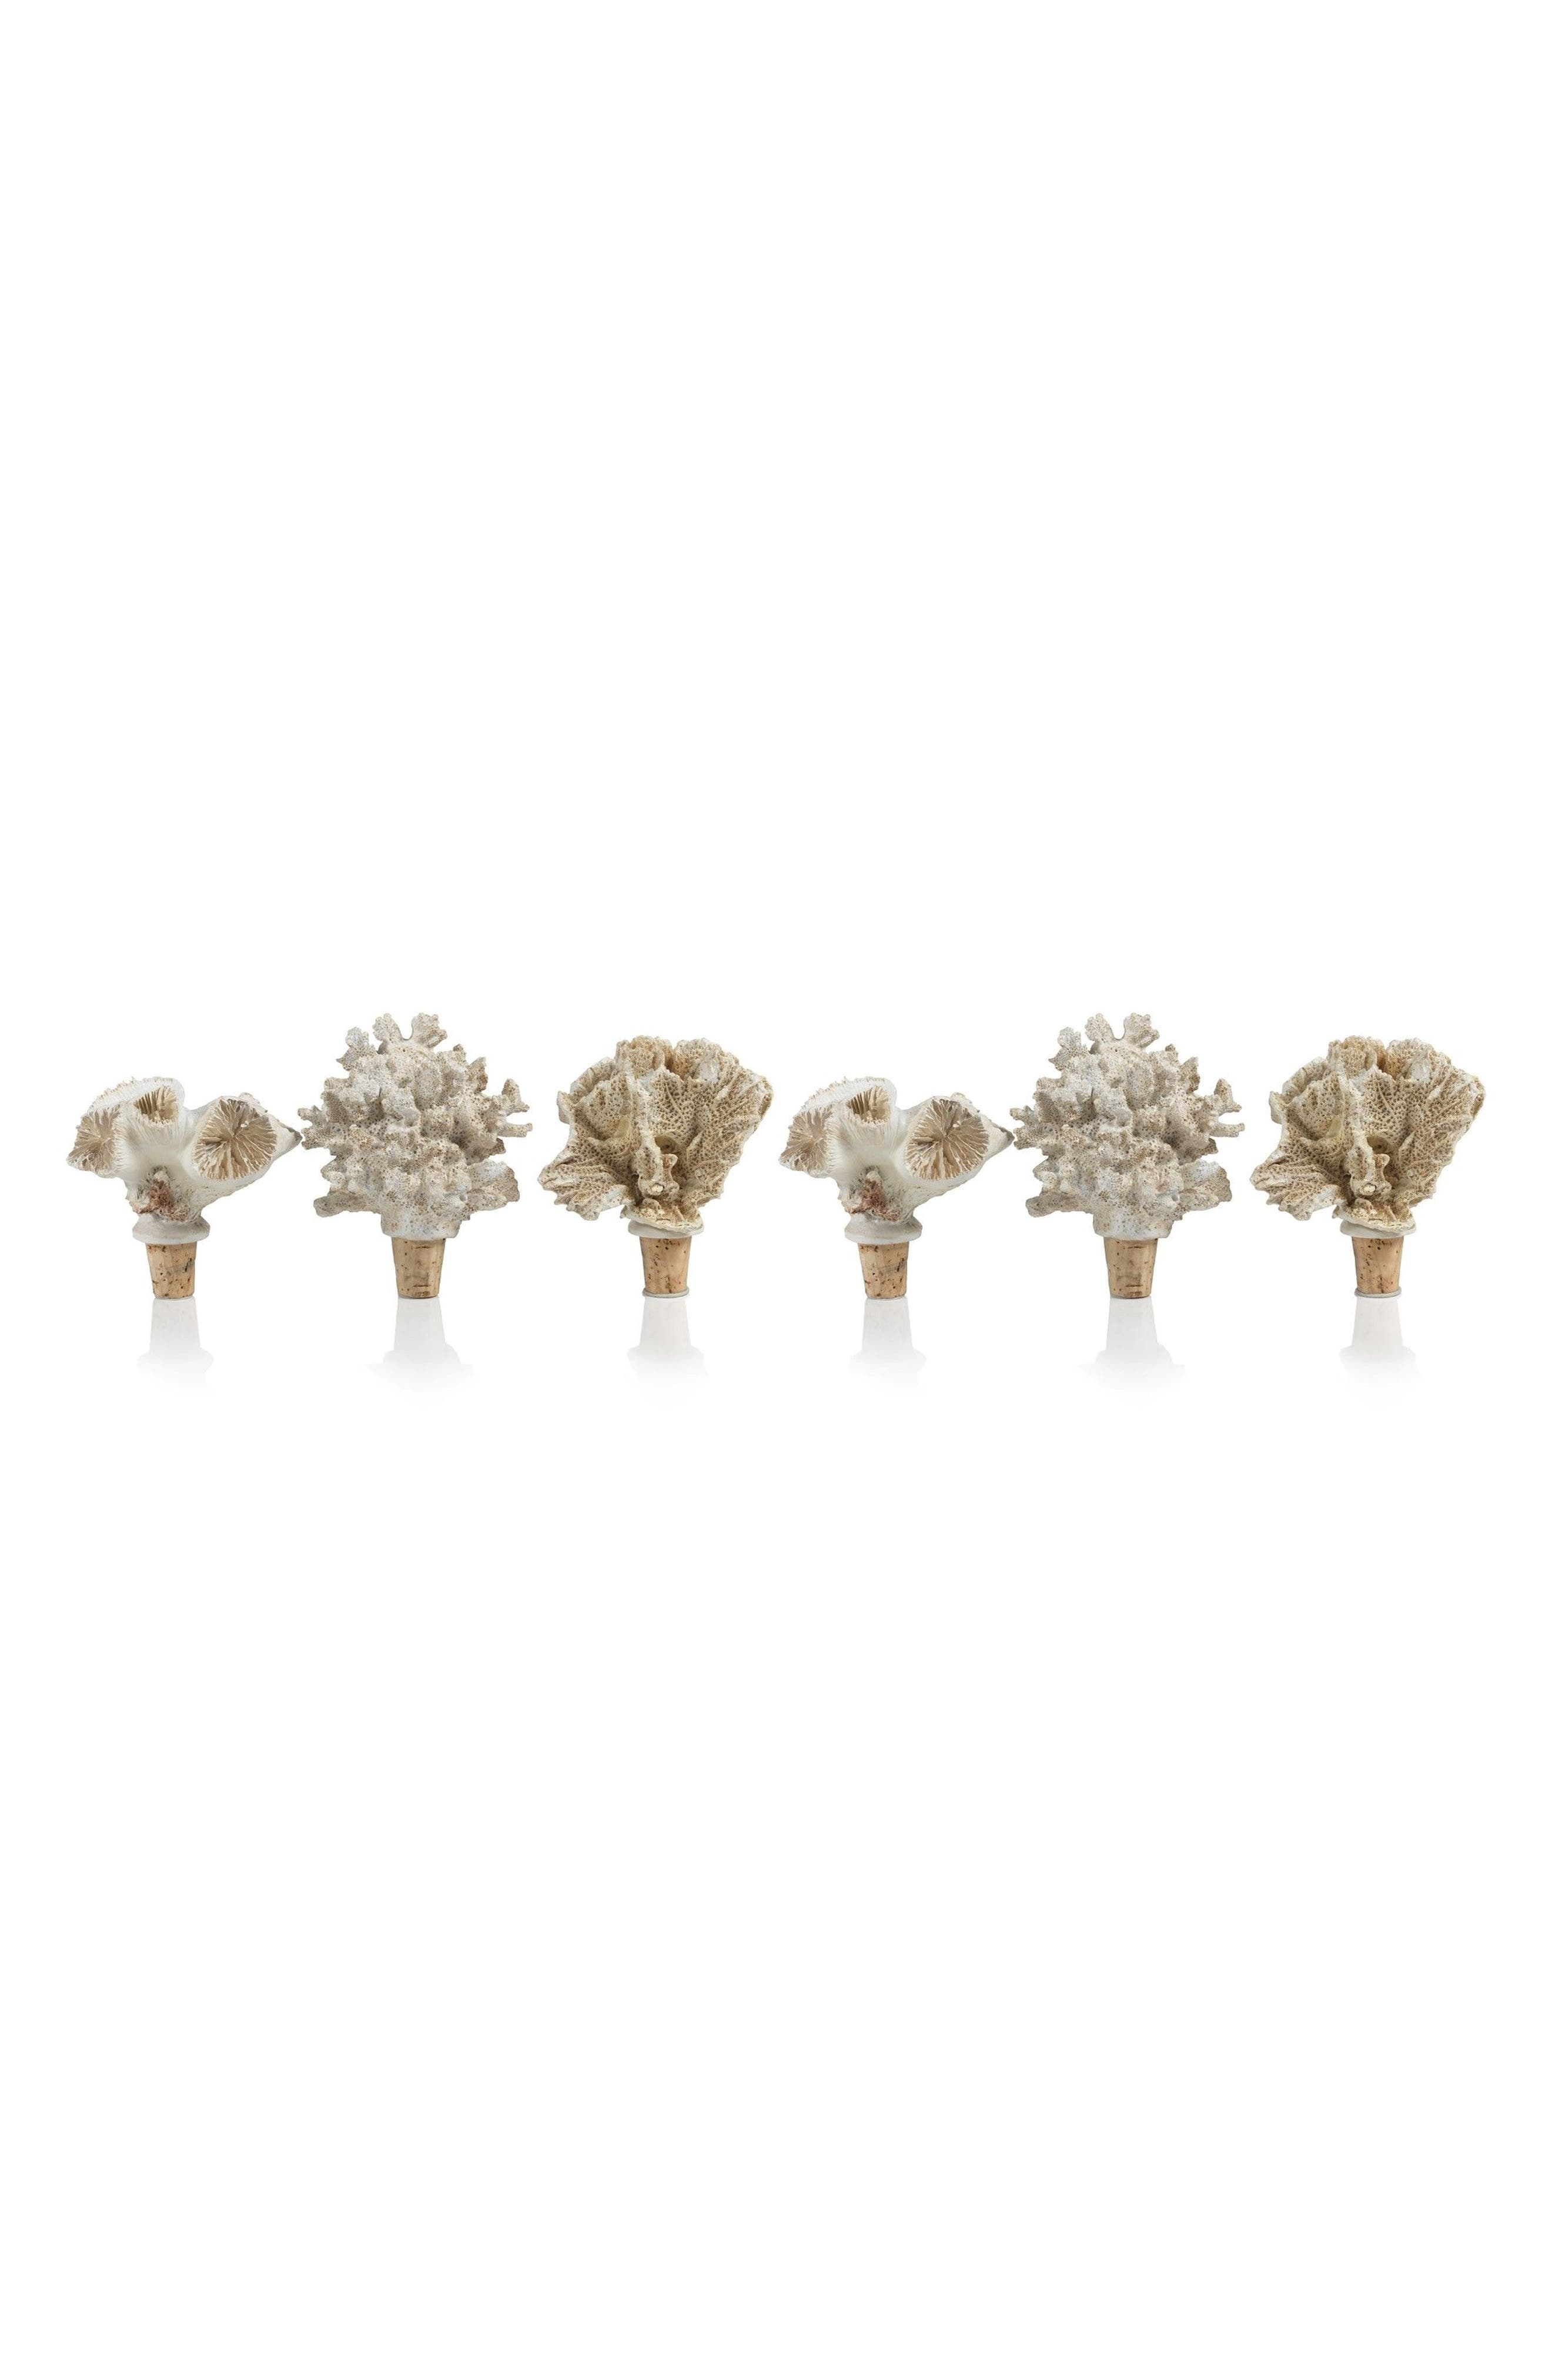 Sea Coral Set of 6 Bottle Stoppers,                             Main thumbnail 1, color,                             100